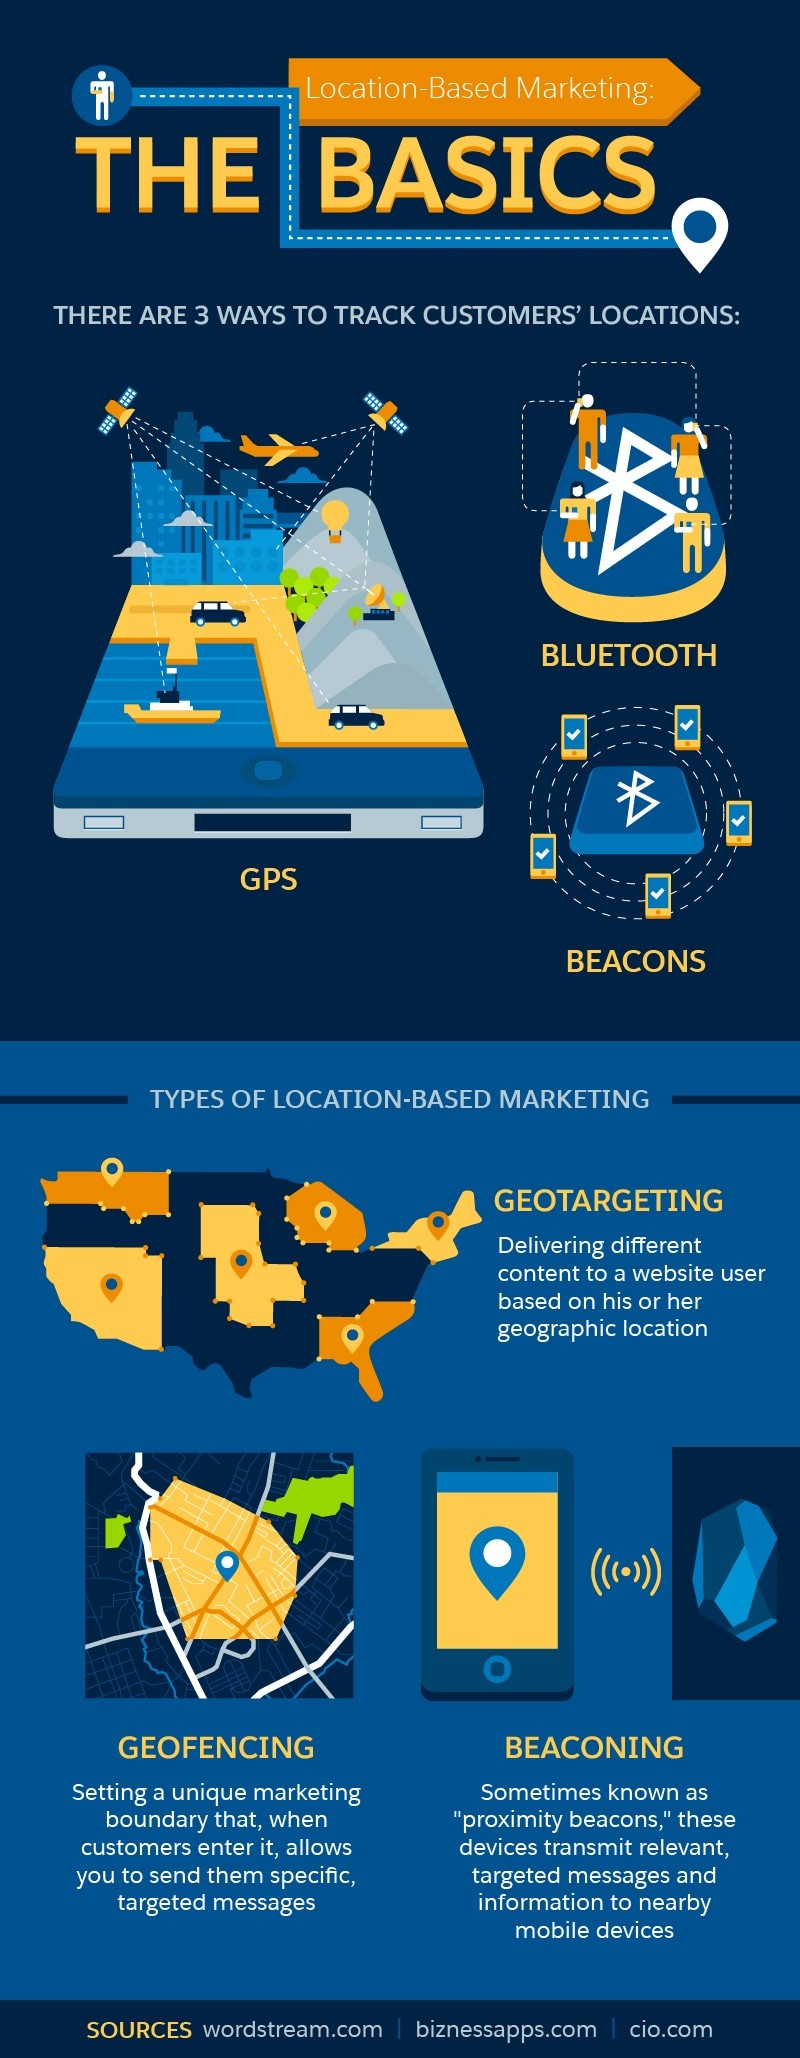 Geofencing | Mobile Marketing, LLC